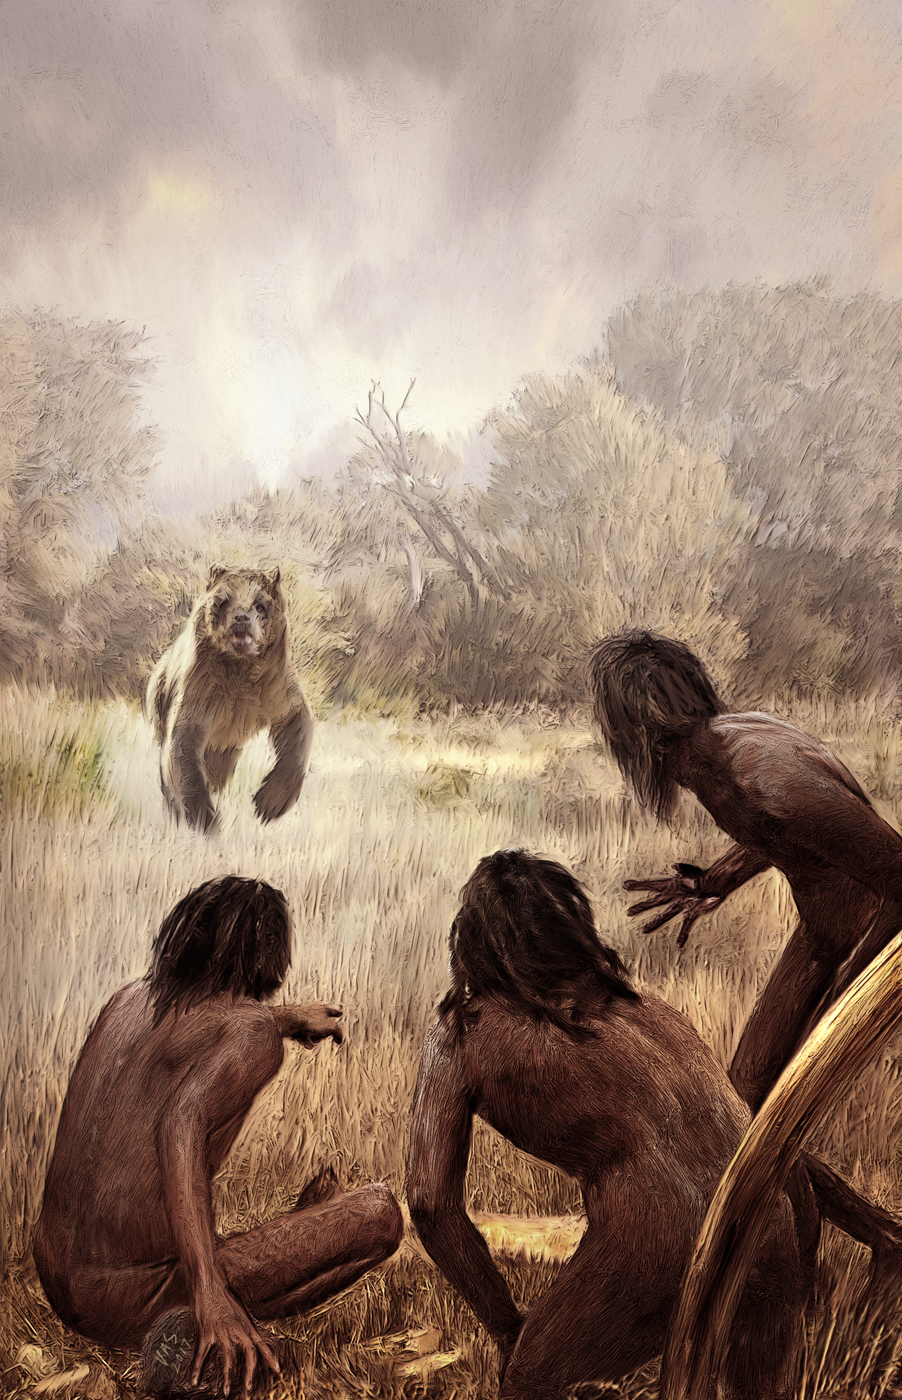 """""""The people were quite involved in their labor so they did not even have a chance to notice the approaching predator. When they saw it it was already late."""""""